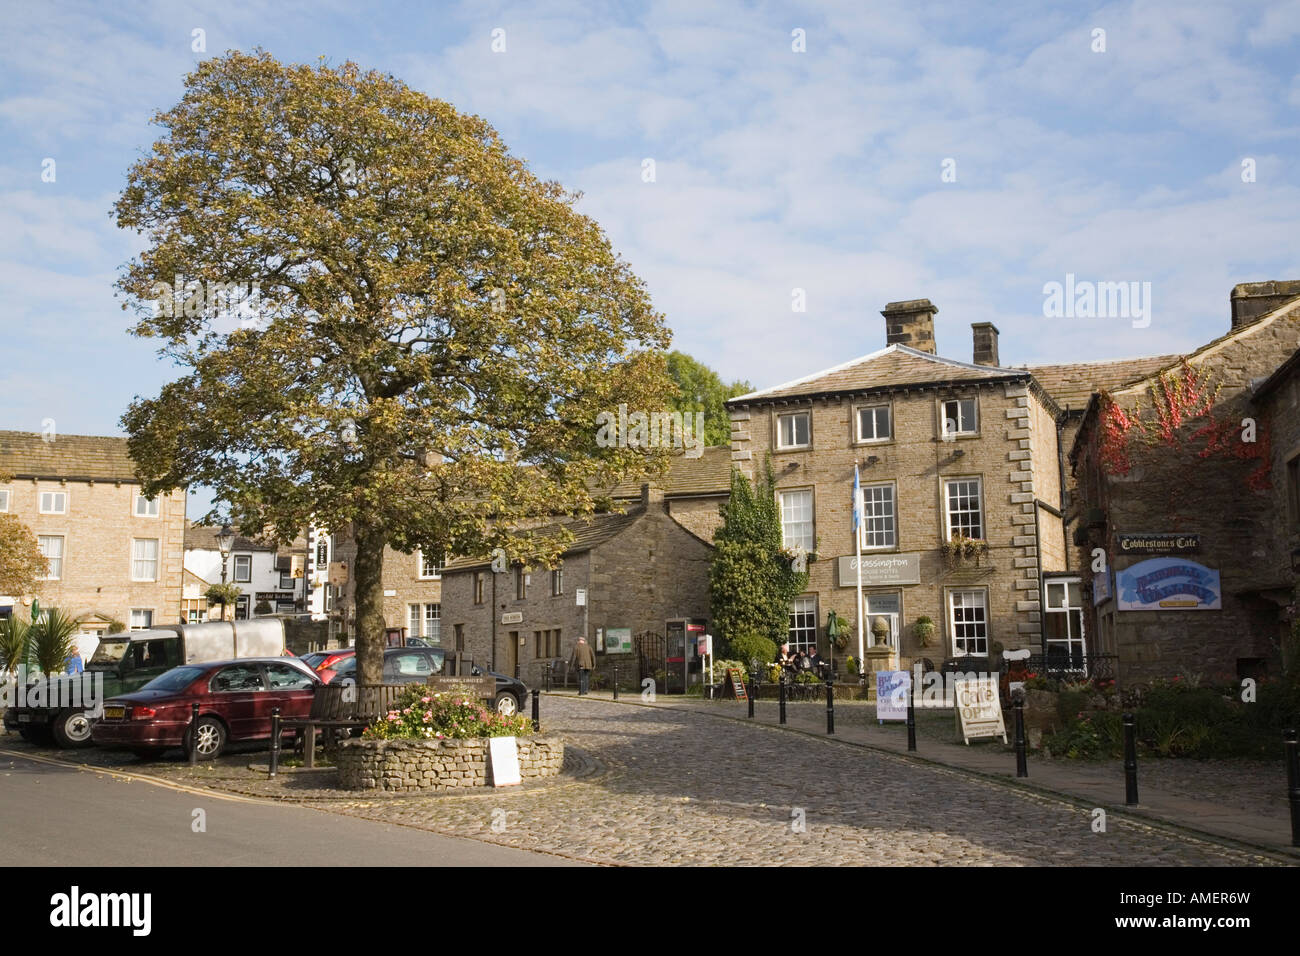 Traditional old stone building in village square in Yorkshire Dales National Park, Grassington Yorkshire England UK Stock Photo